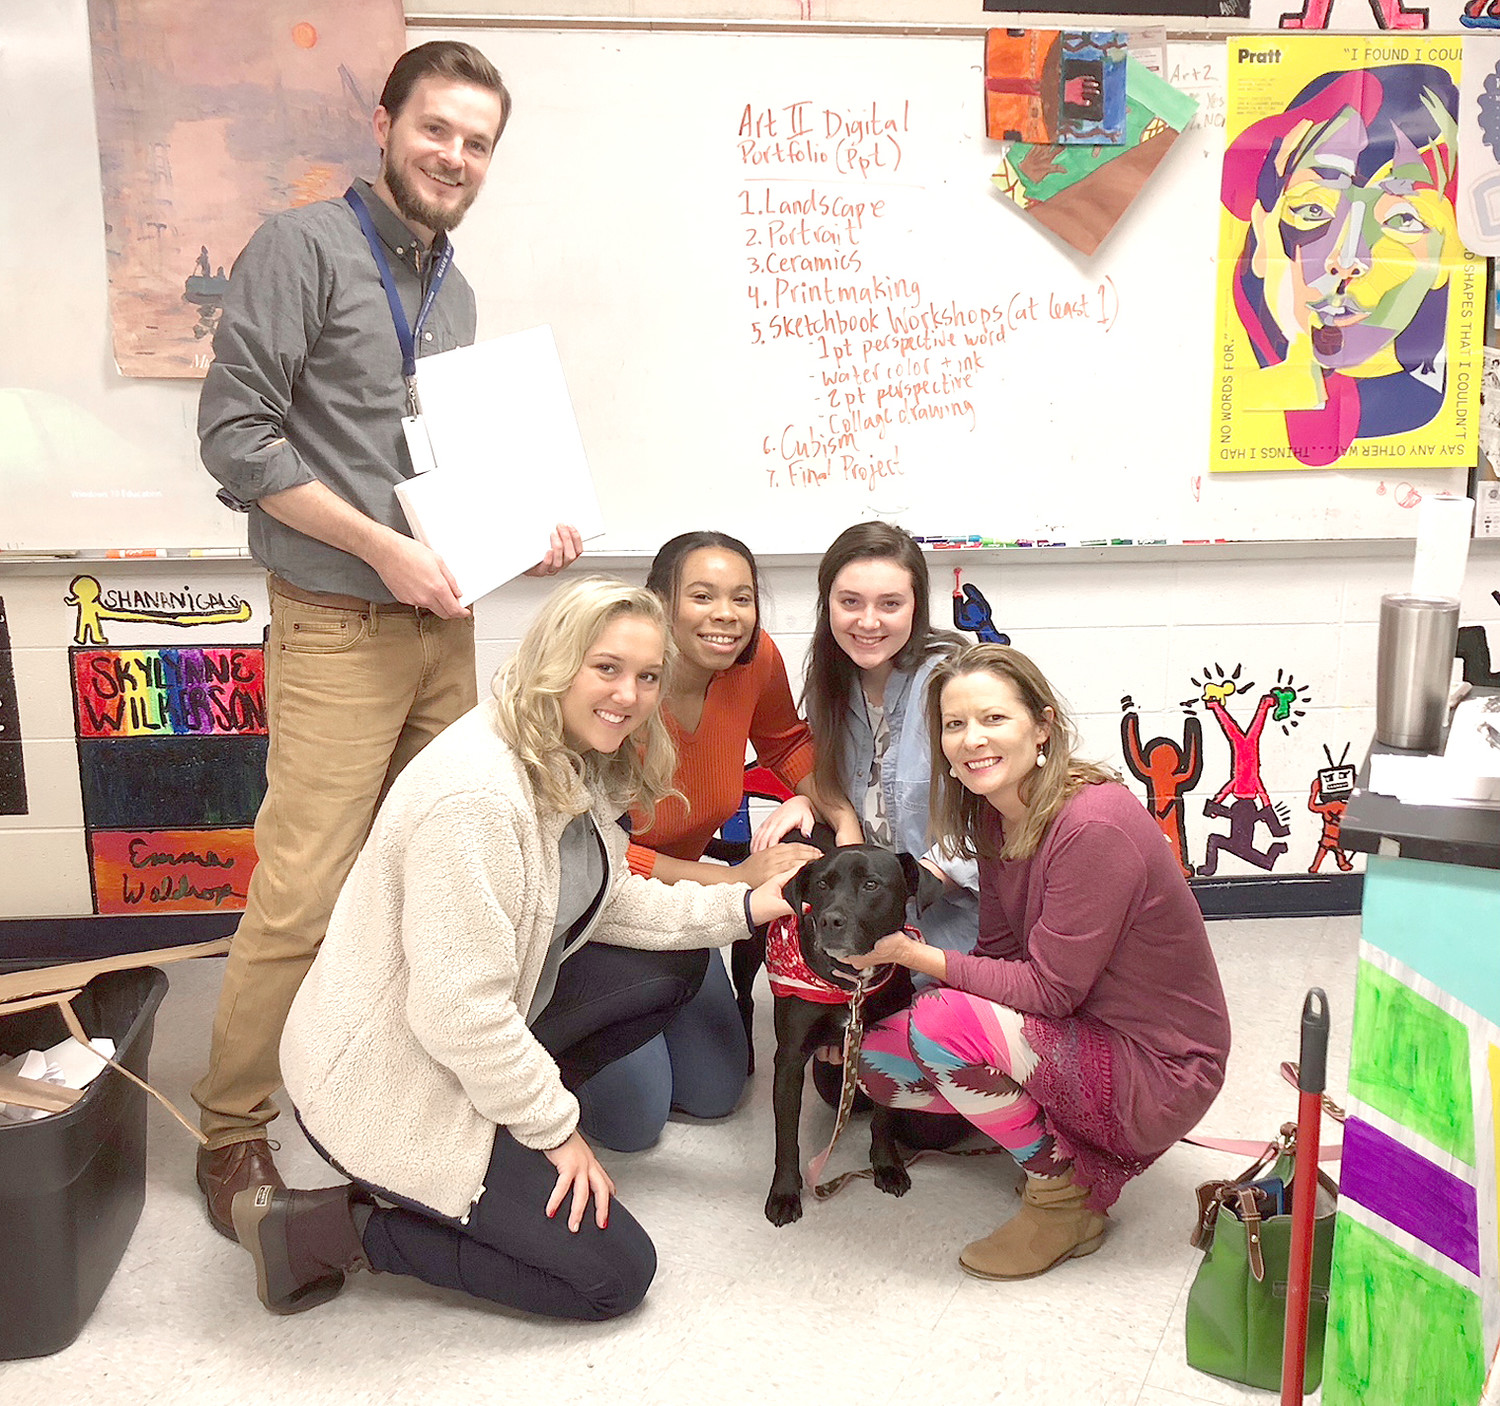 CLEVELAND HIGH students in Colin Campbell's art class helped Addie paint canvases that will be sold, with 100 percent of the proceeds from the sales going to Helping Paws Healing Hearts. From left are students Madison Rue, Tatyanna Dyer, and Makayla Hoffman, and Amy Hicks, while CHS art teacher Colin Campbell looks on.